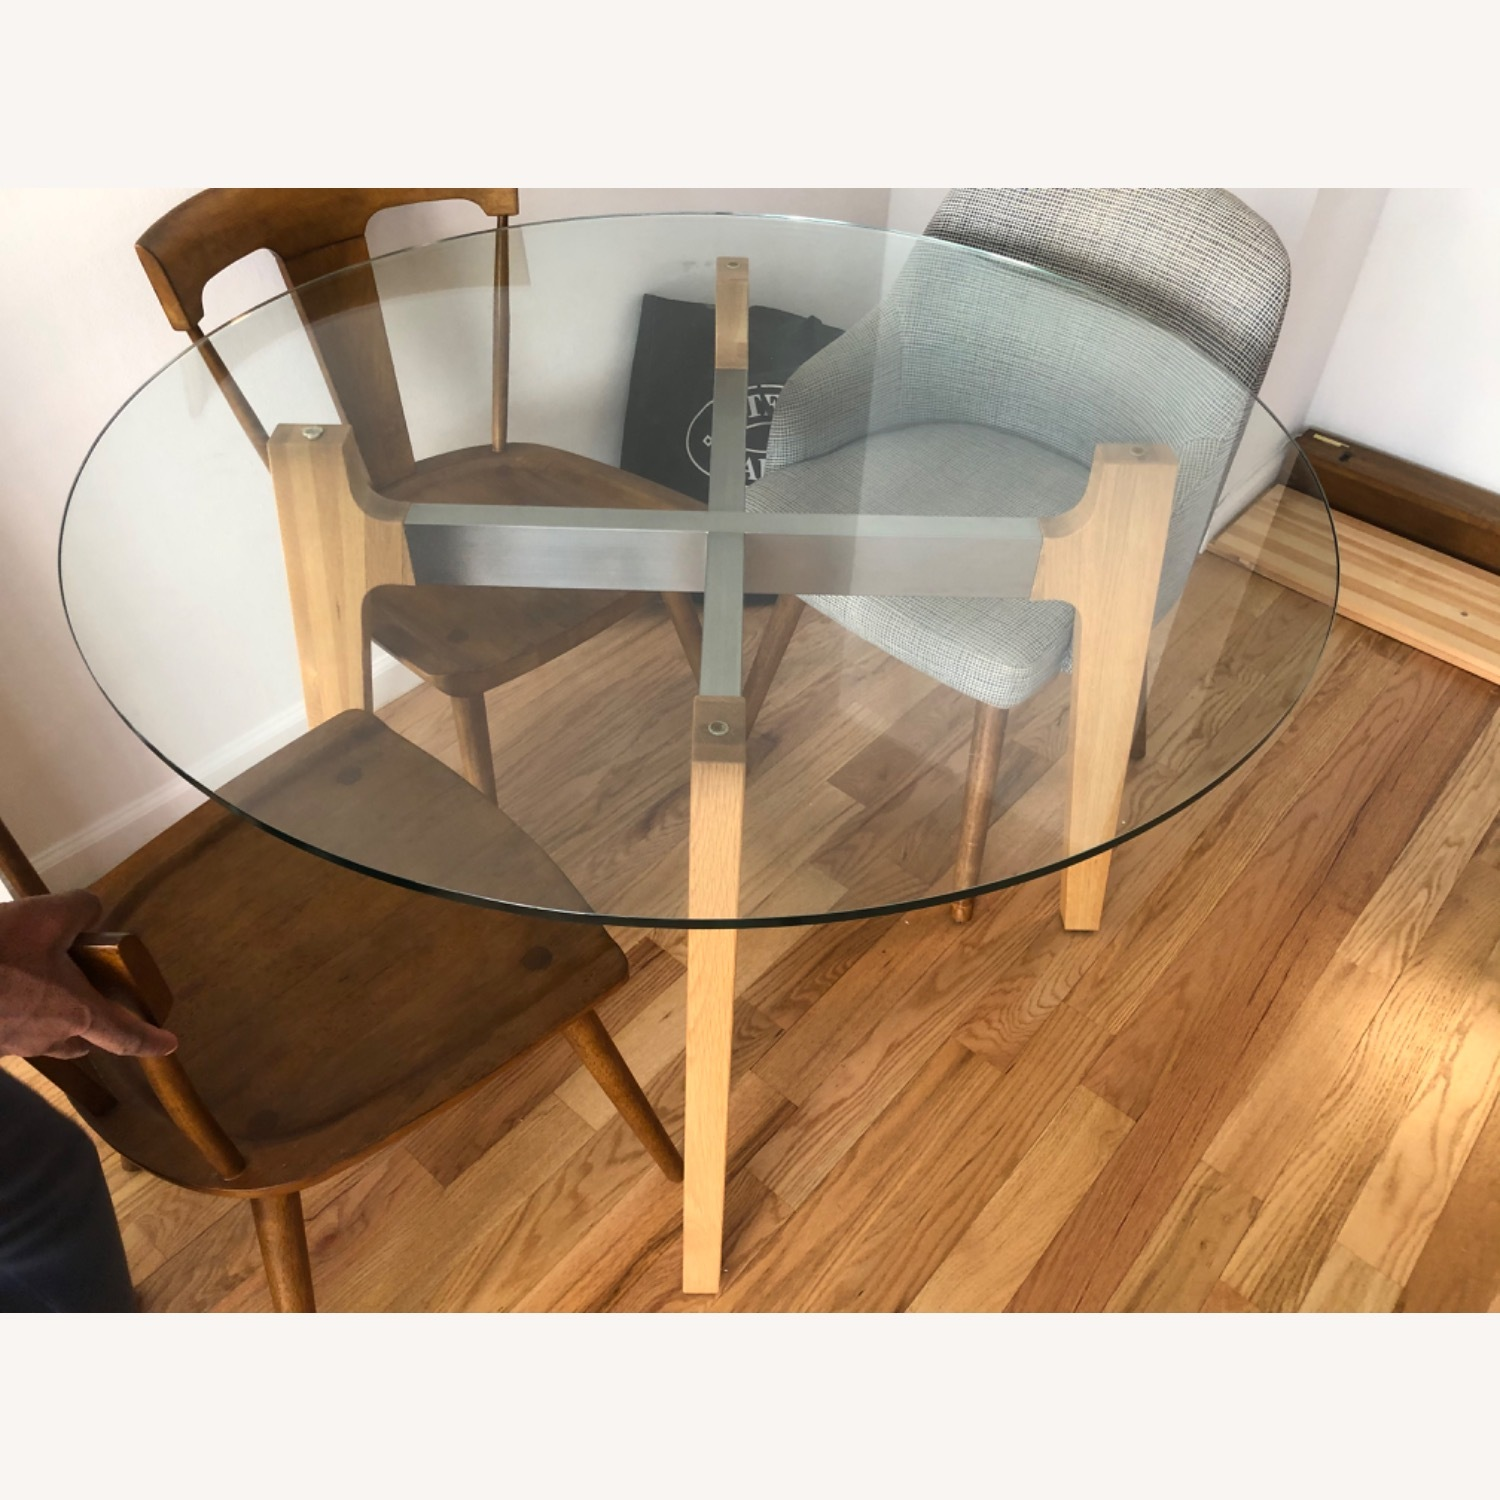 Crate and Barrel 48 Glass Table - image-8